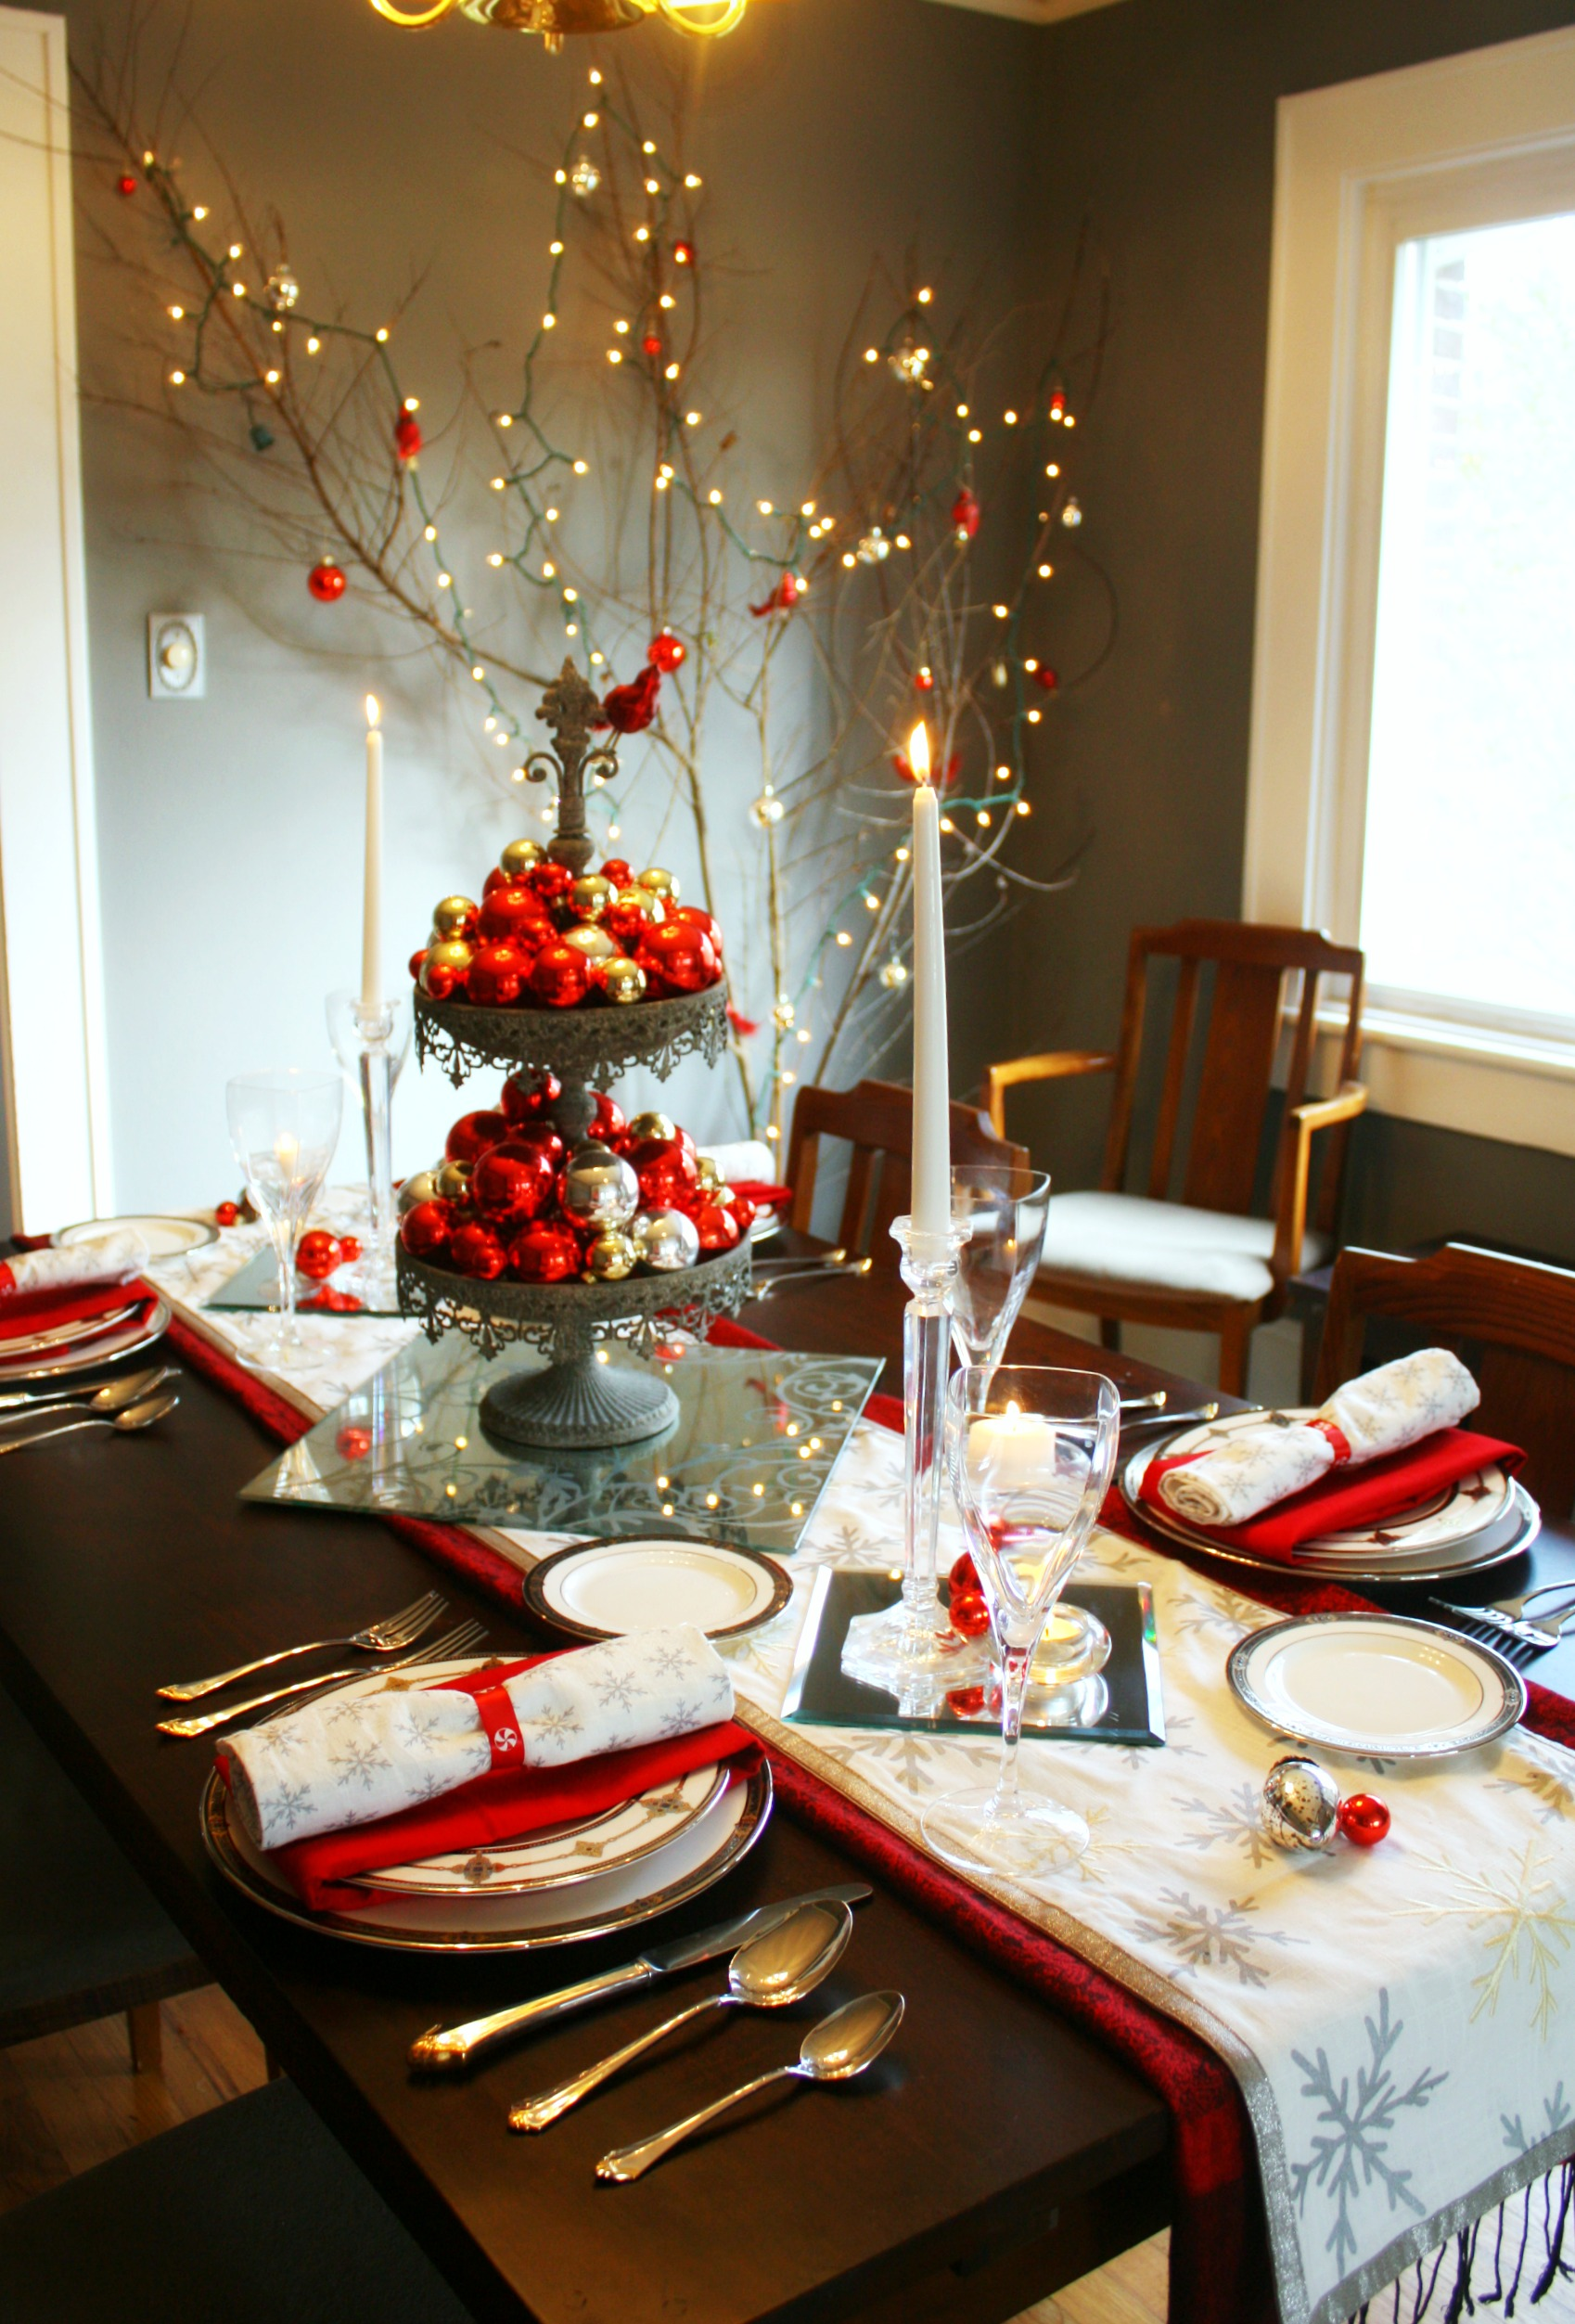 Christmas table decorations red and gold - You Might Recognize Some Of These Tablescape Elements From Earlier Christmas Table Decor